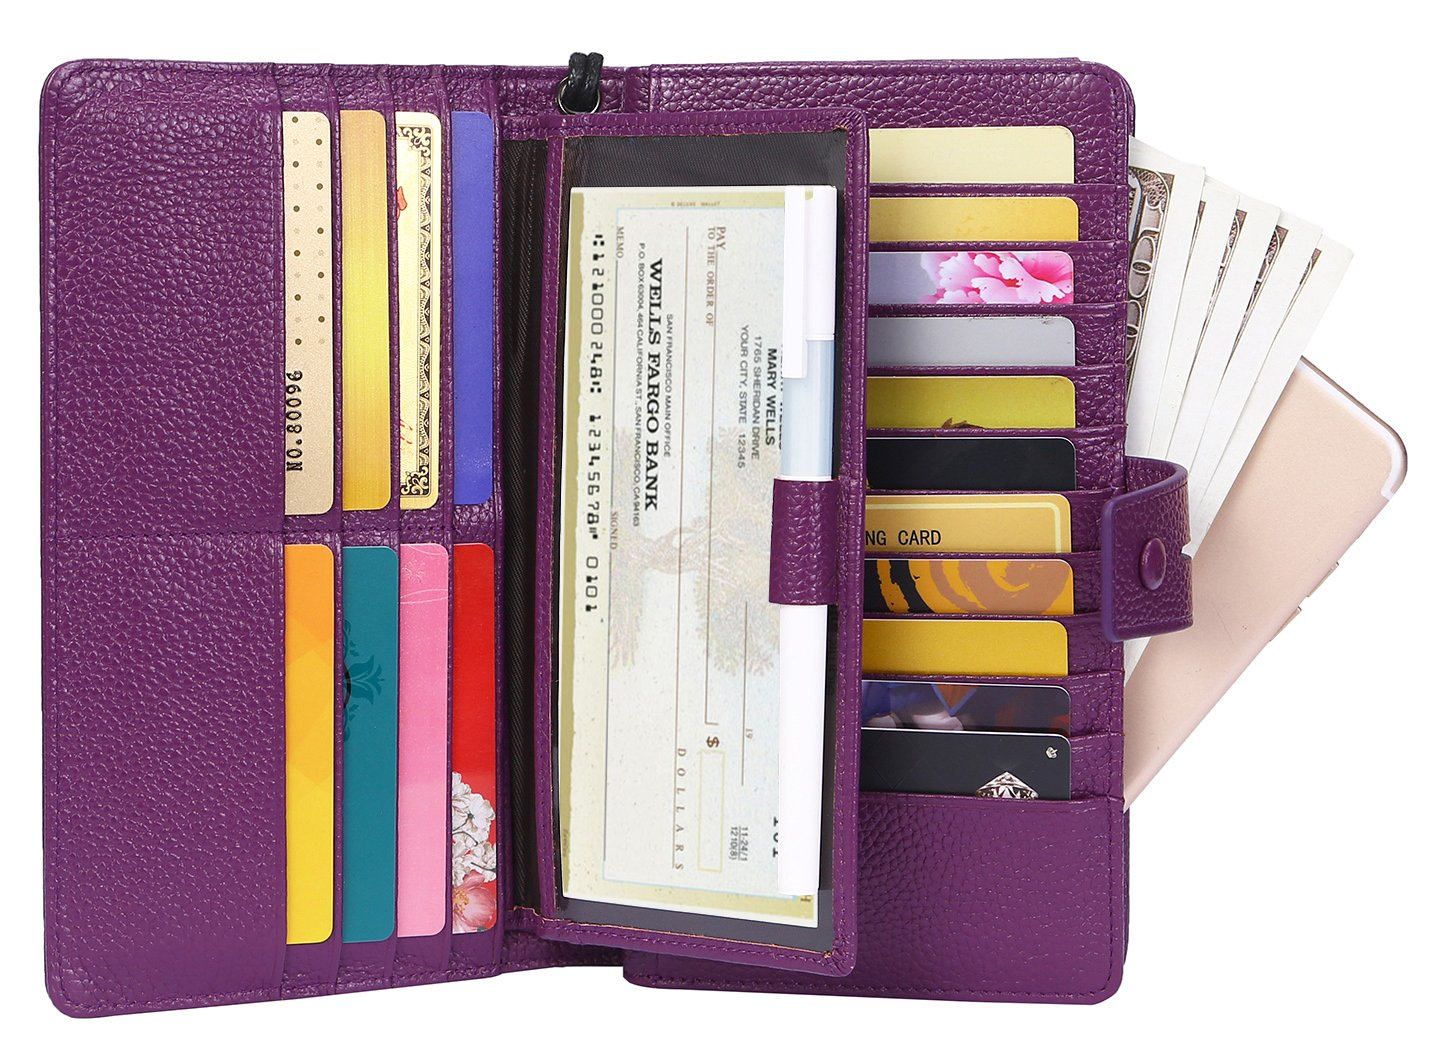 AINIMOER Women's Big RFID Blocking Leather Zip Around Wallets for Womens Clutch Organizer Checkbook Holder Large Travel Purse(Lichee Purple) by AINIMOER (Image #1)